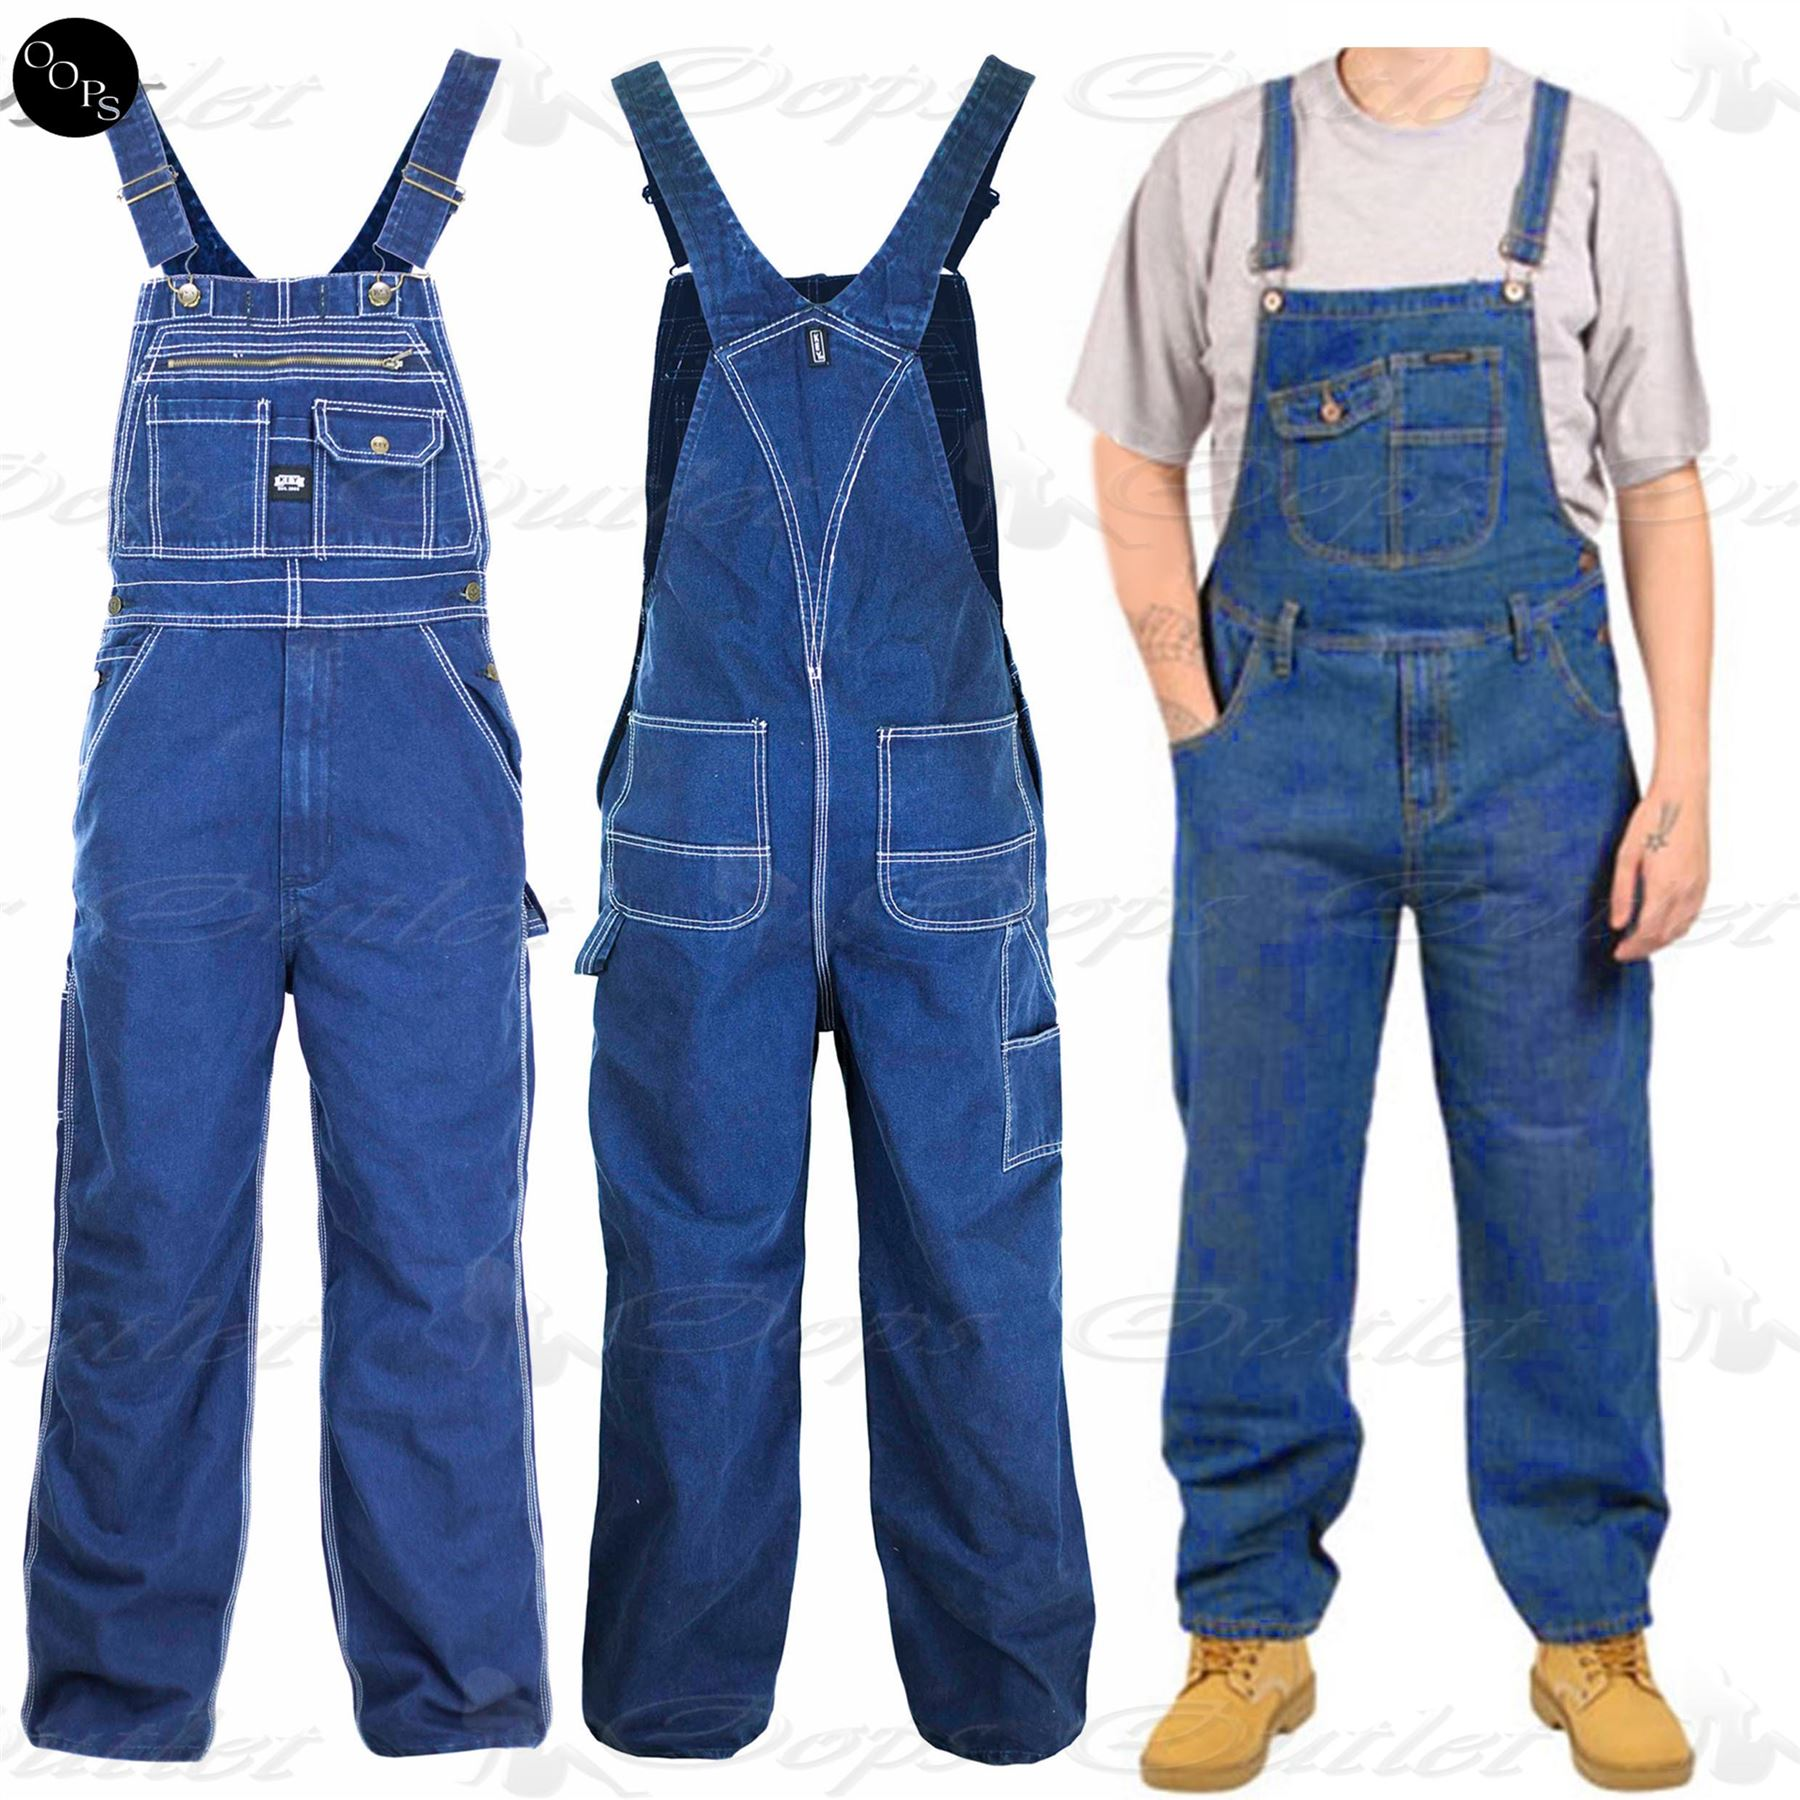 Mens Work Overall Loose Fit Womens Ladies Jeans Pinafore Denim ... 9cbe84e394f